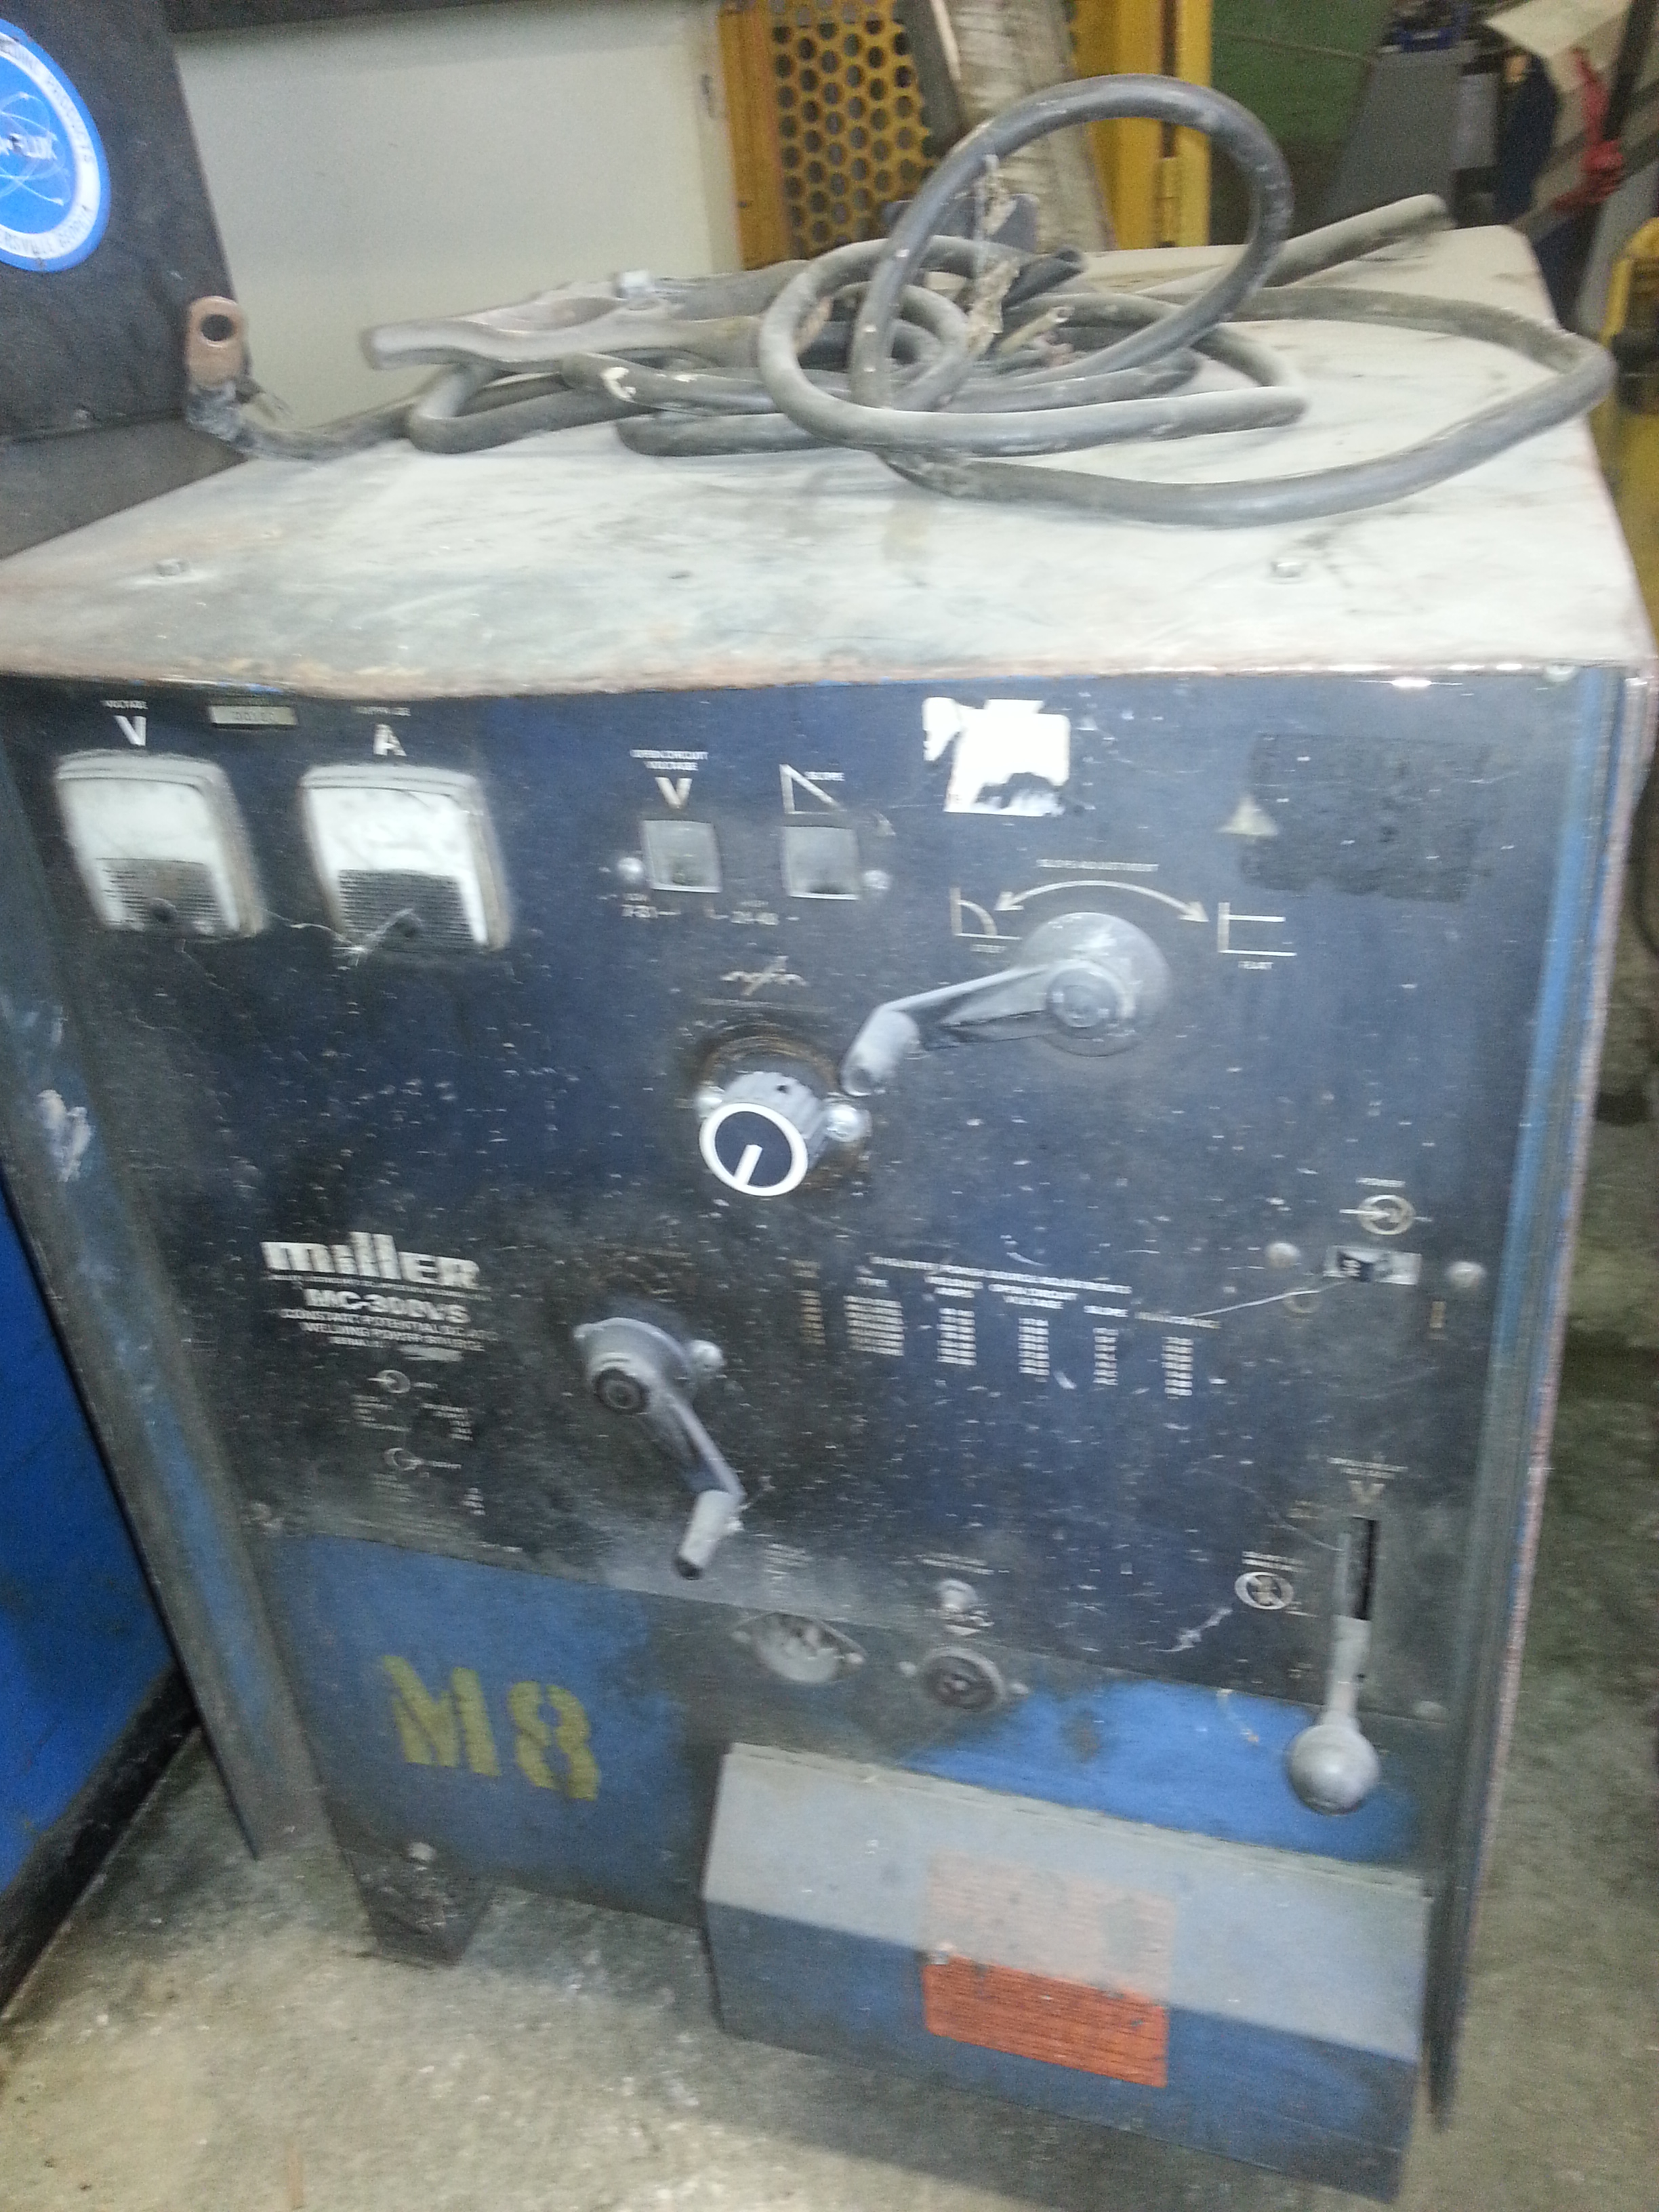 1 - PREOWNED MILLER CC AC/DC POWER SOURCE, MODEL #: MC300VS, <br>S/N: JF909910